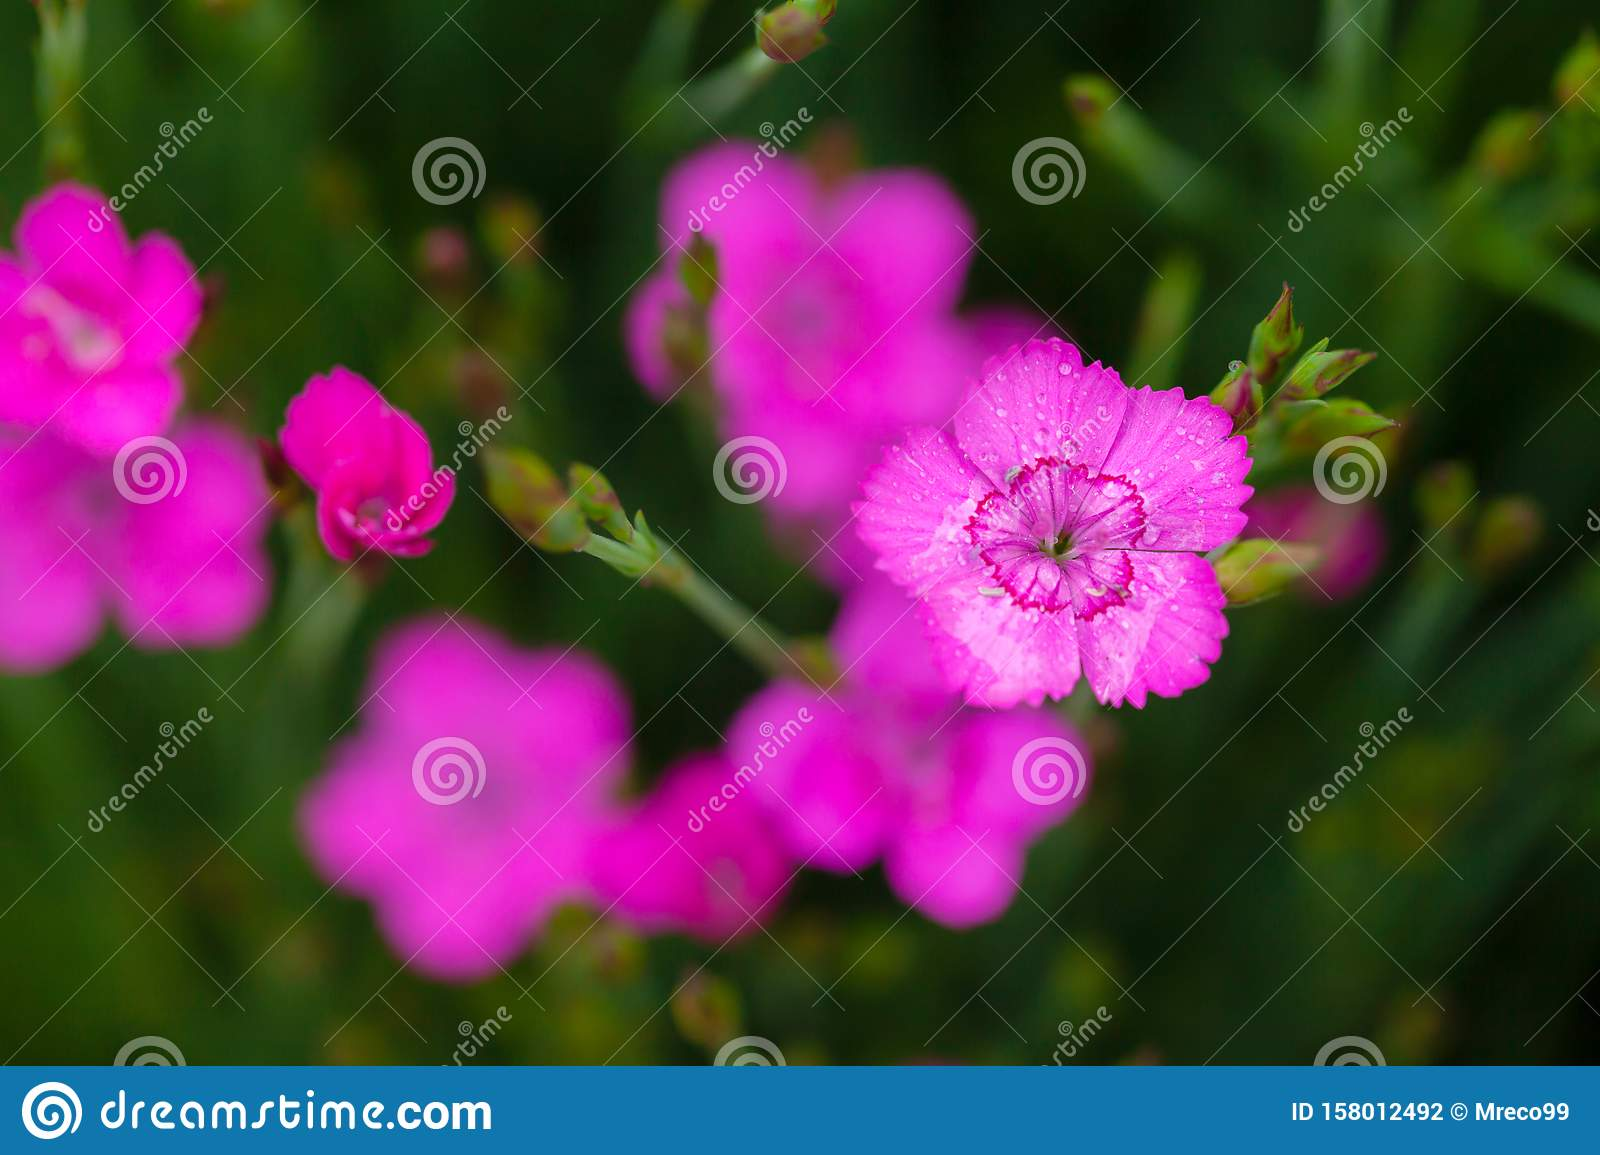 Little pink Dianthus flowers open